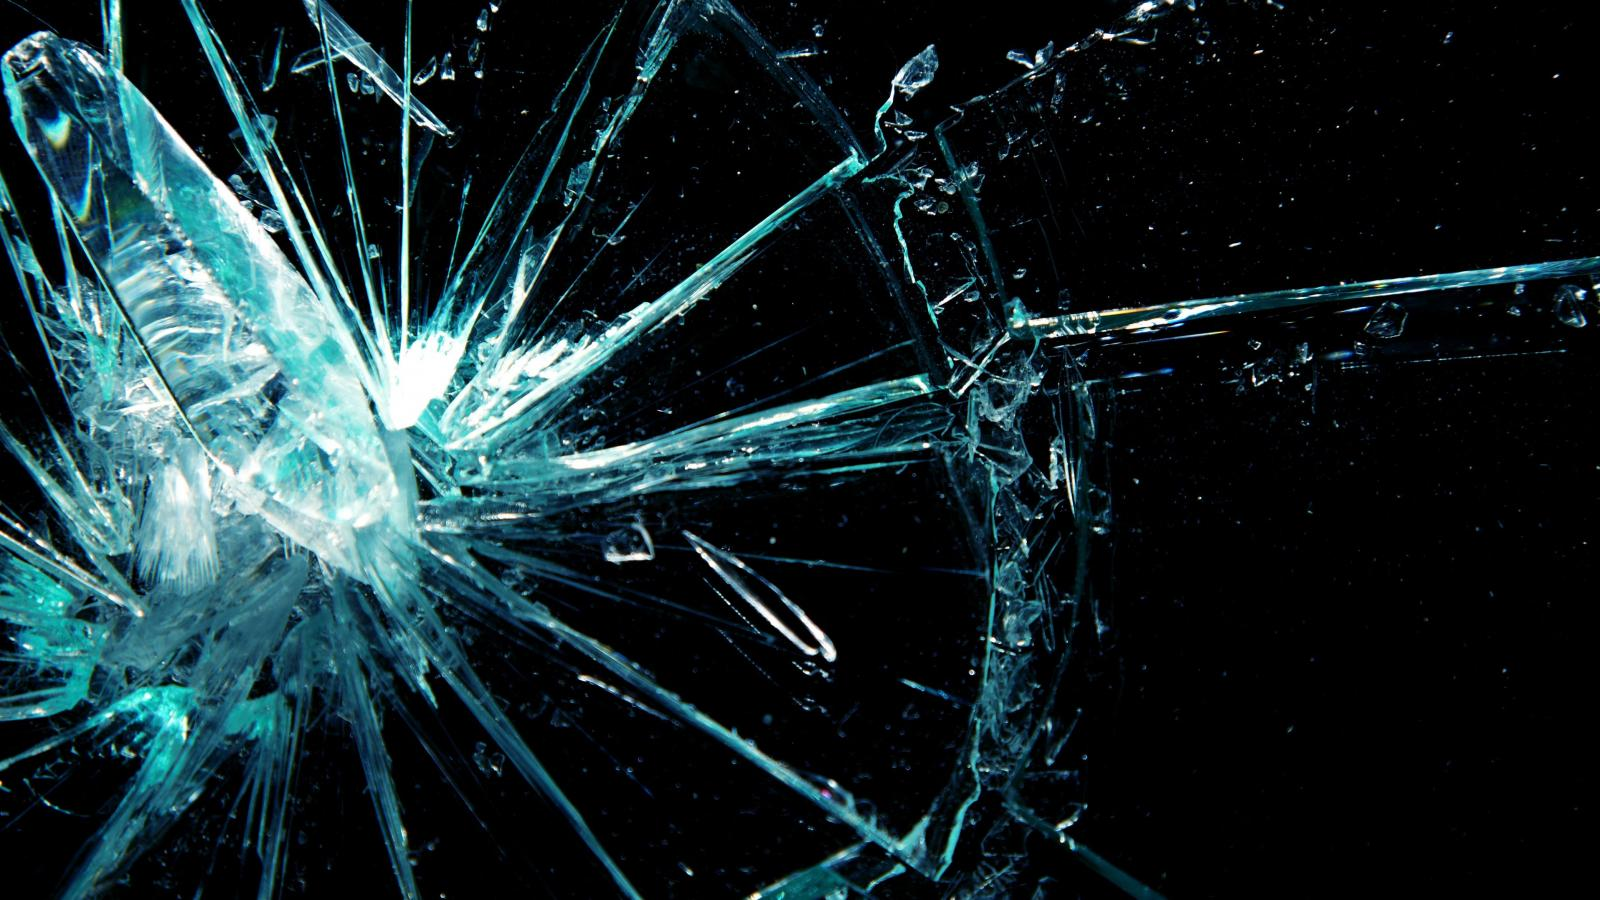 Cracked Screen Wallpaper Iphone X Broken Screen Wallpaper 3 Of 49 Broken Glass With Dark